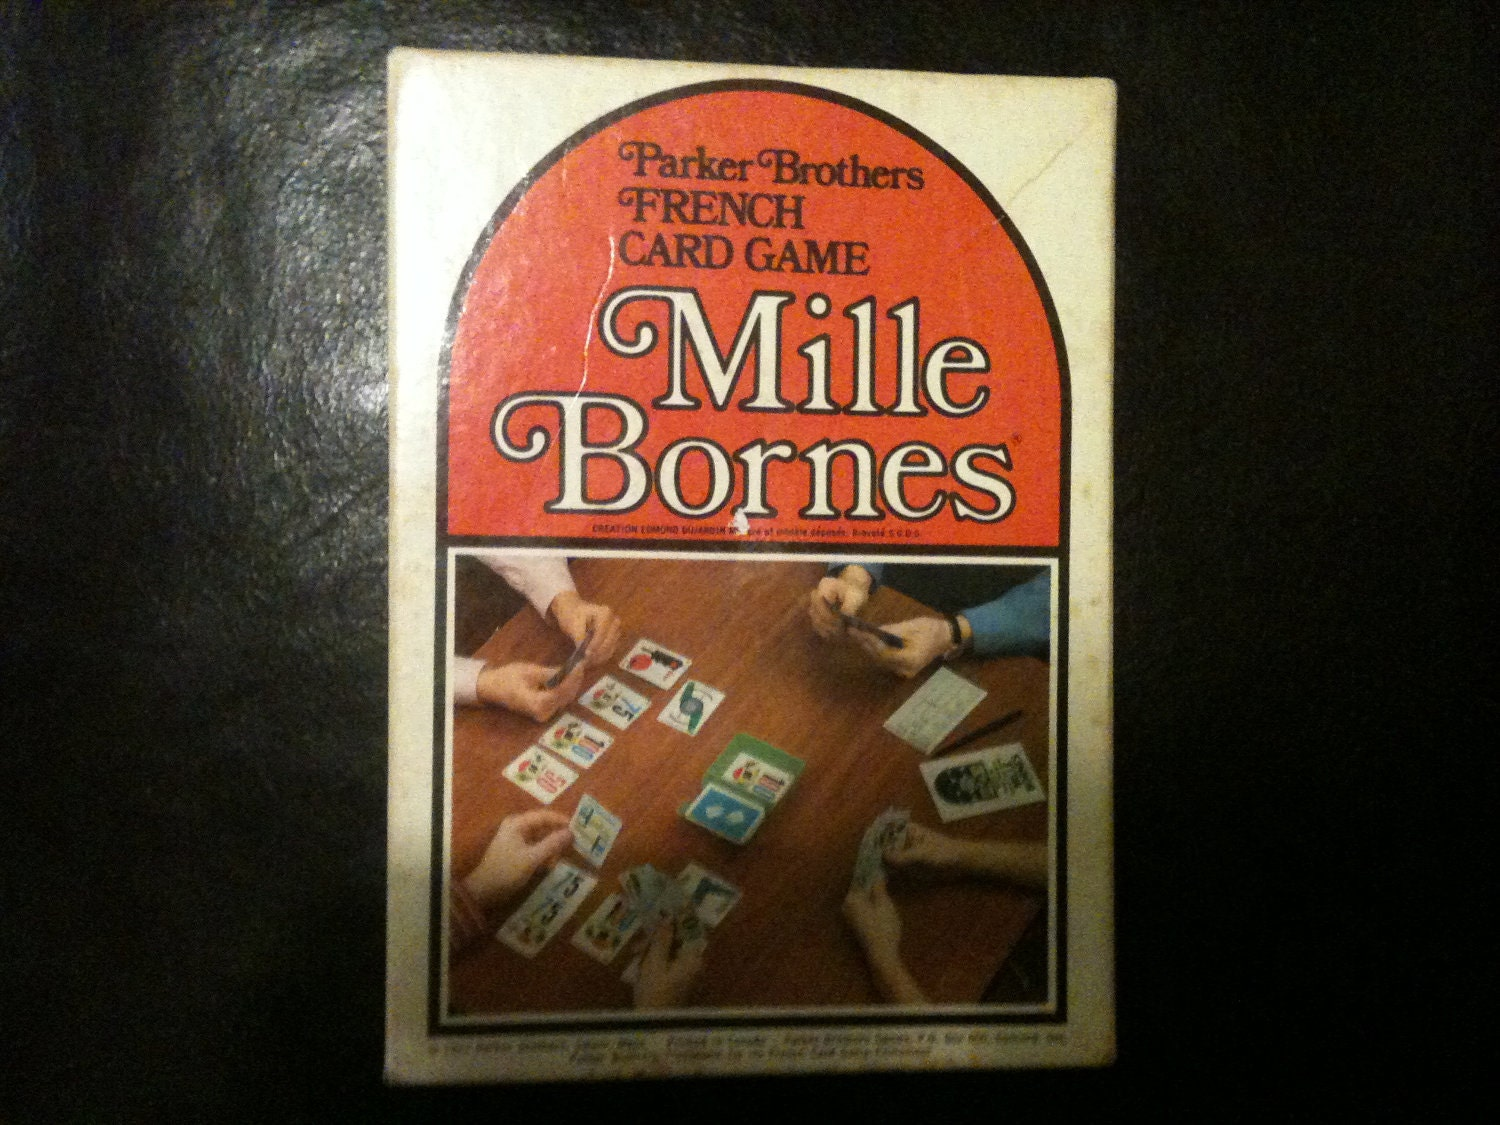 Mille bornes 1971 french card game by parker brothers kids - Coup fourre mille bornes ...